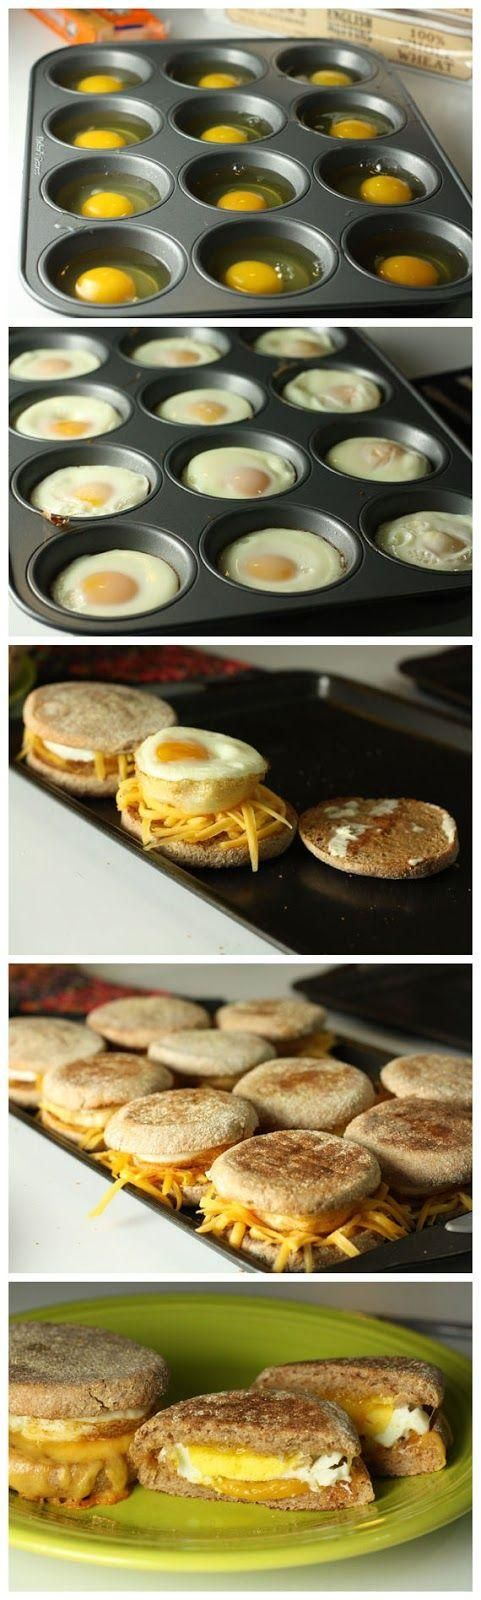 Breakfast Sandwiches // perfect for prep day, use your favorite eggs, muffin/bagel and freeze or refrigerate #prepday #healthy #mealplanning